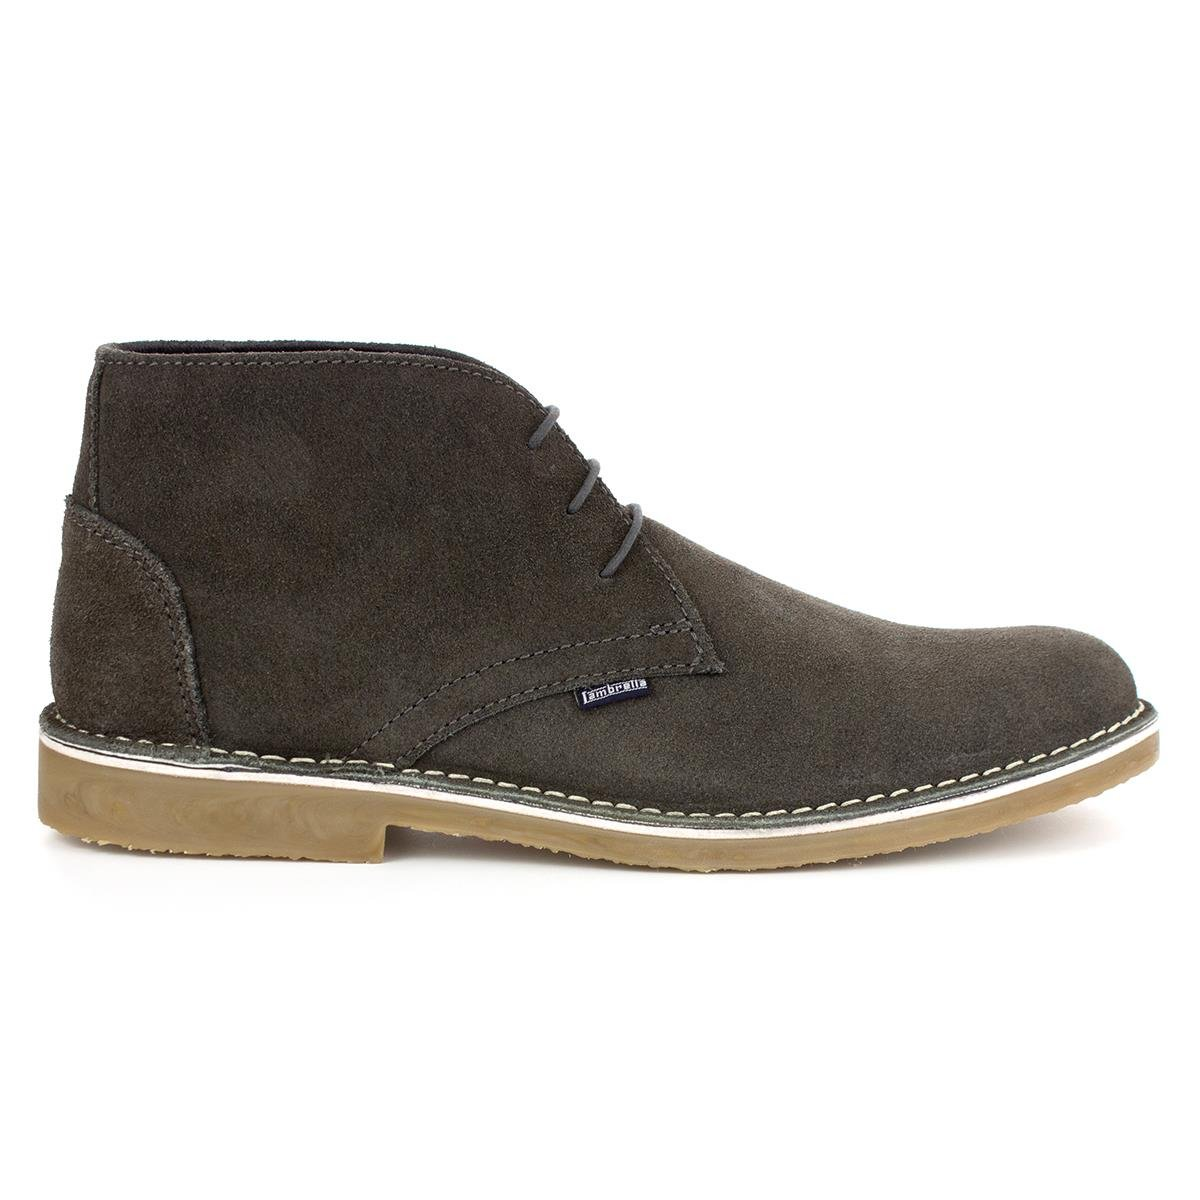 38ce482c59cf Lambretta Mens Grey Suede Lace Up Desert Boots - Size 7 UK - Grey:  Amazon.co.uk: Shoes & Bags